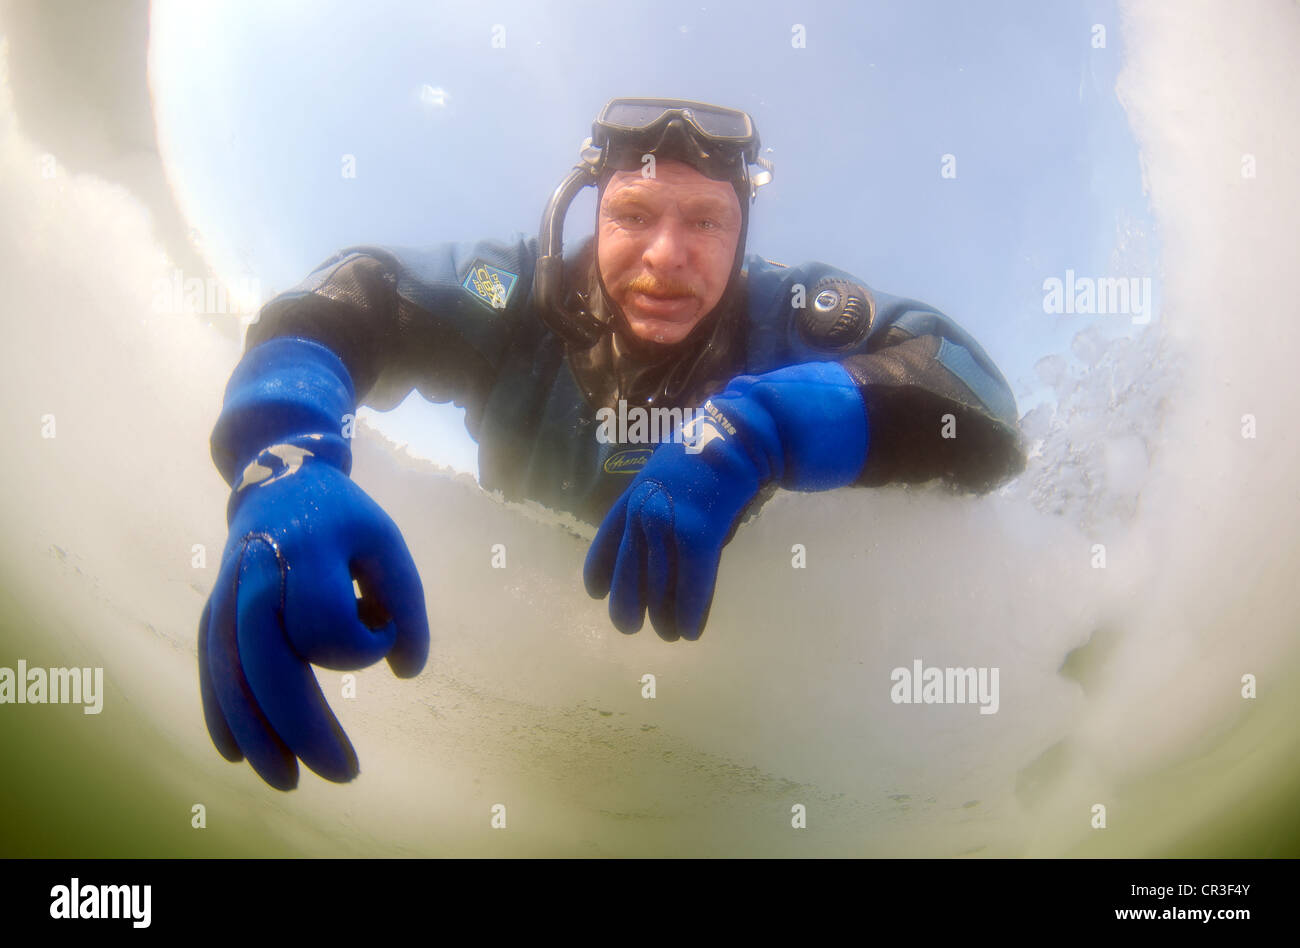 Diver's hand giving the OK sign, subglacial diving, ice diving, in the frozen Black Sea, a rare phenomenon - Stock Image